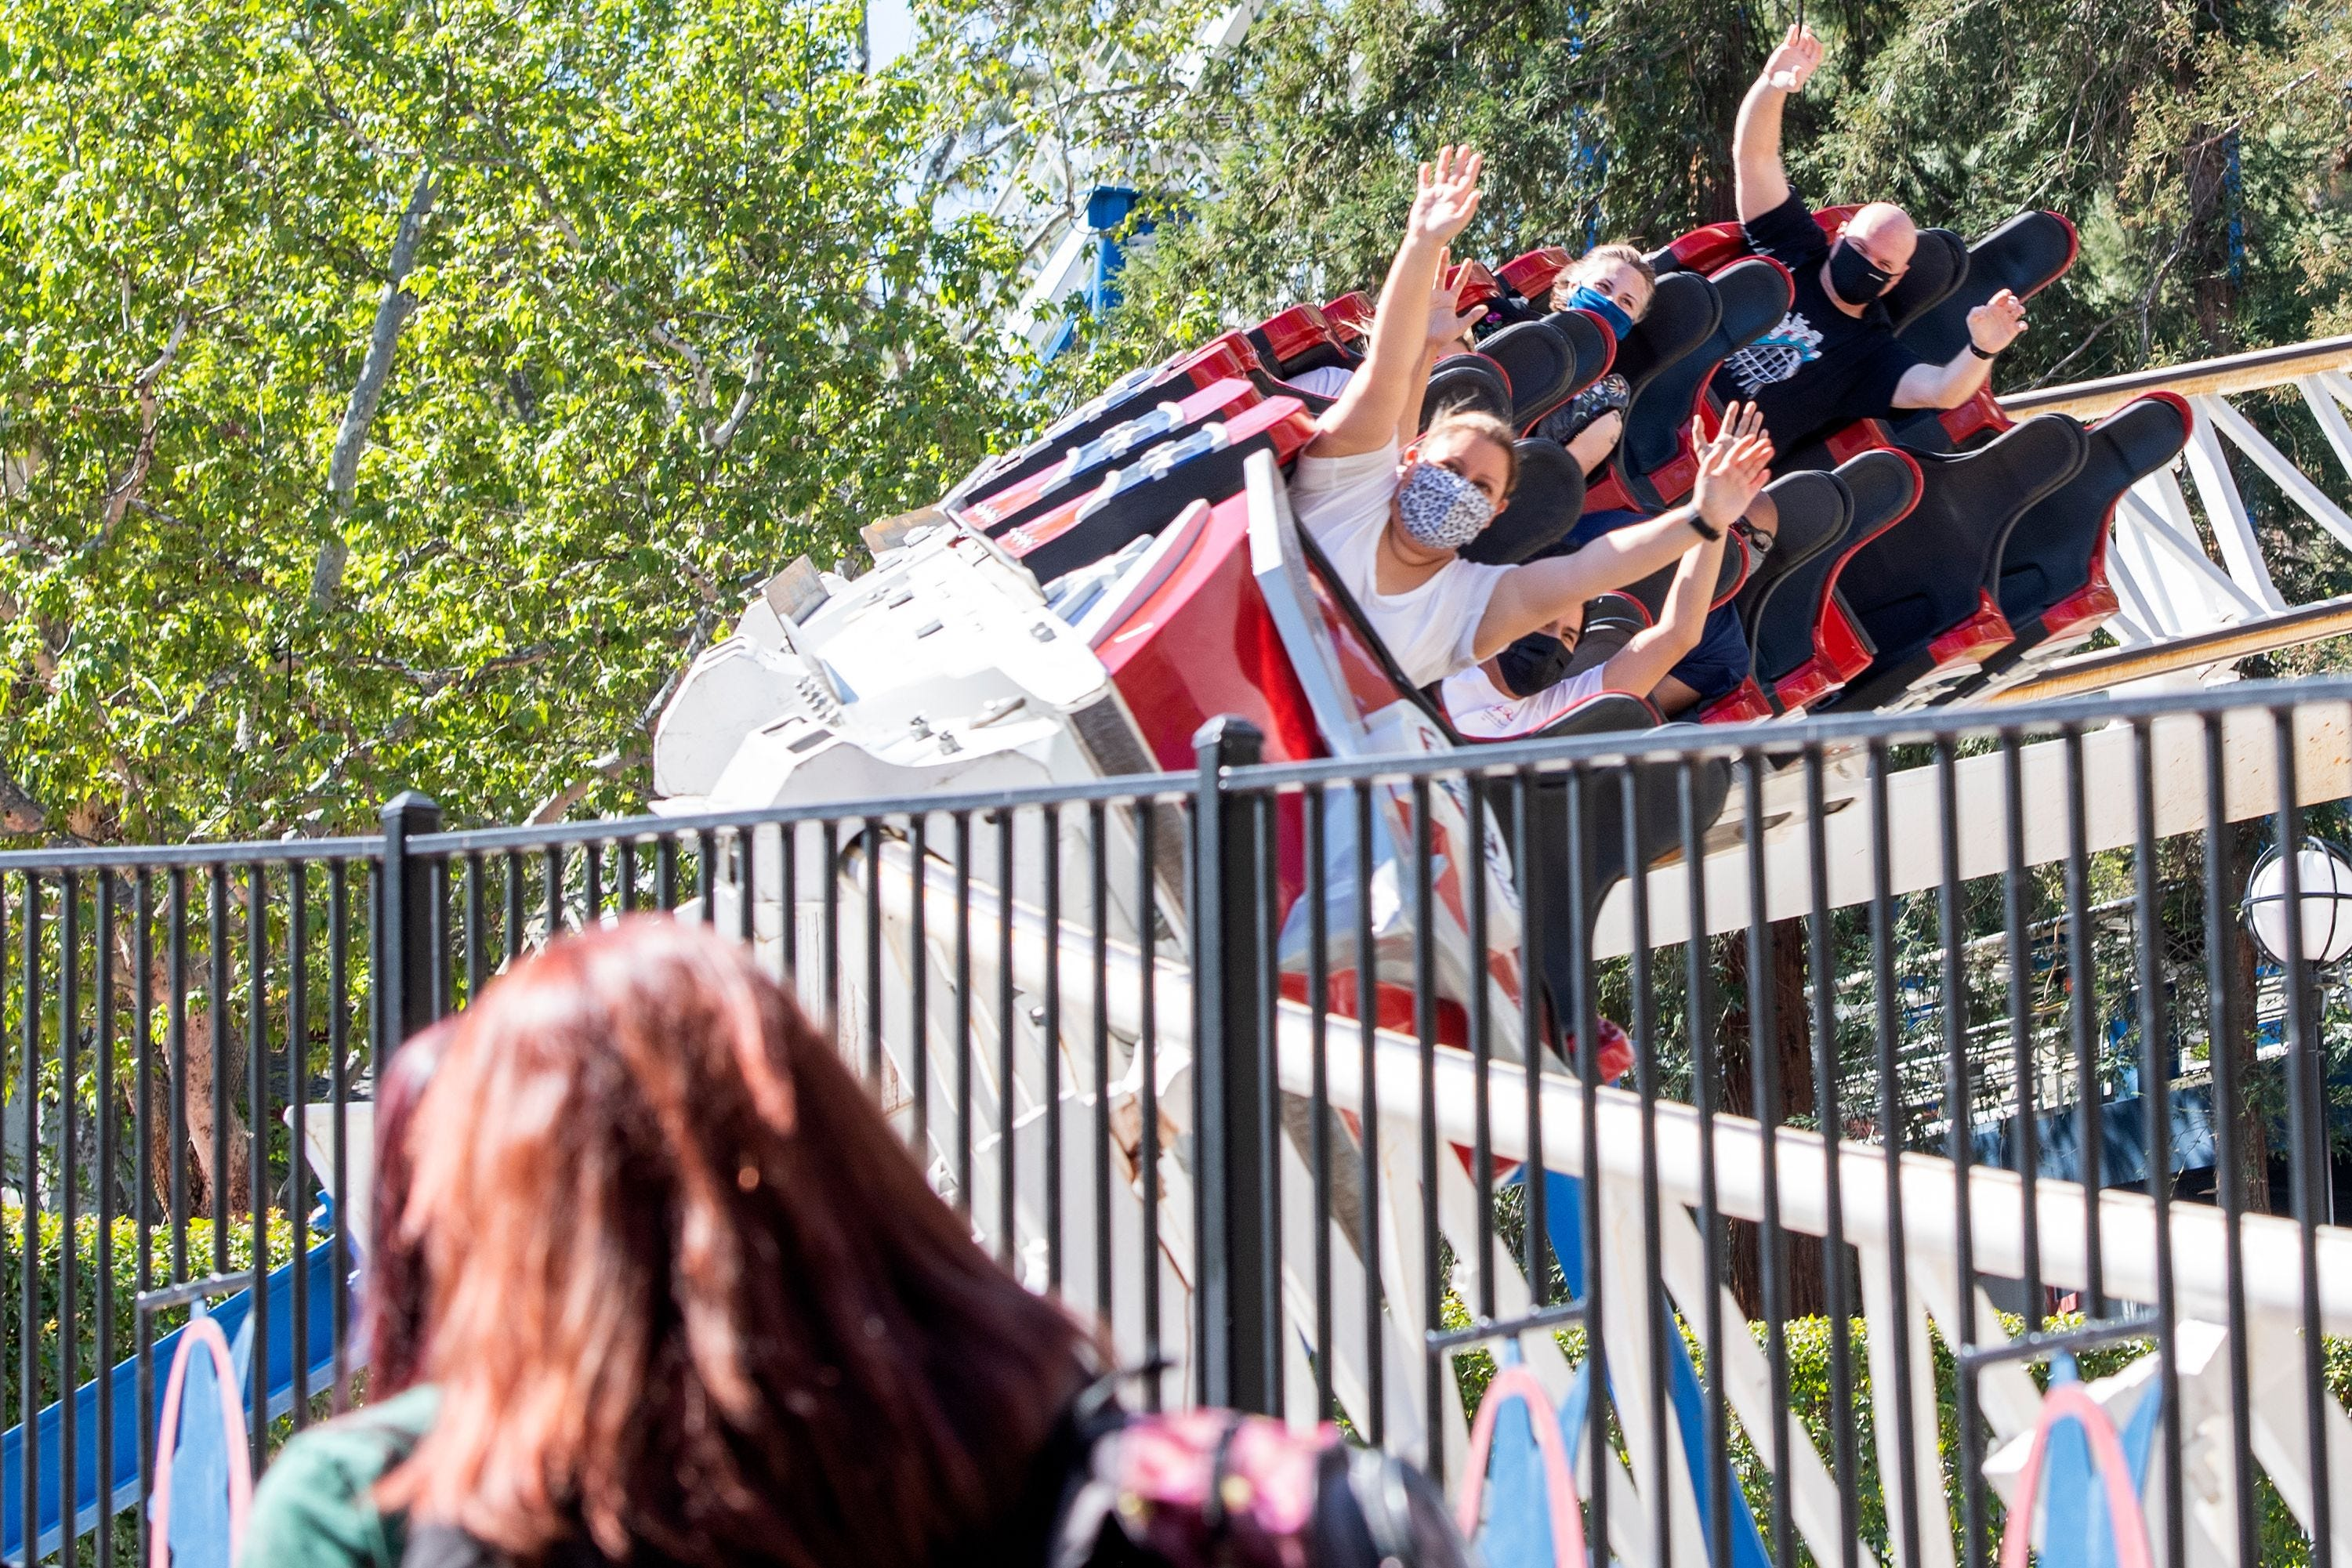 There are over 100 rides and activities to sink your teeth into at Six Flags America in Maryland.